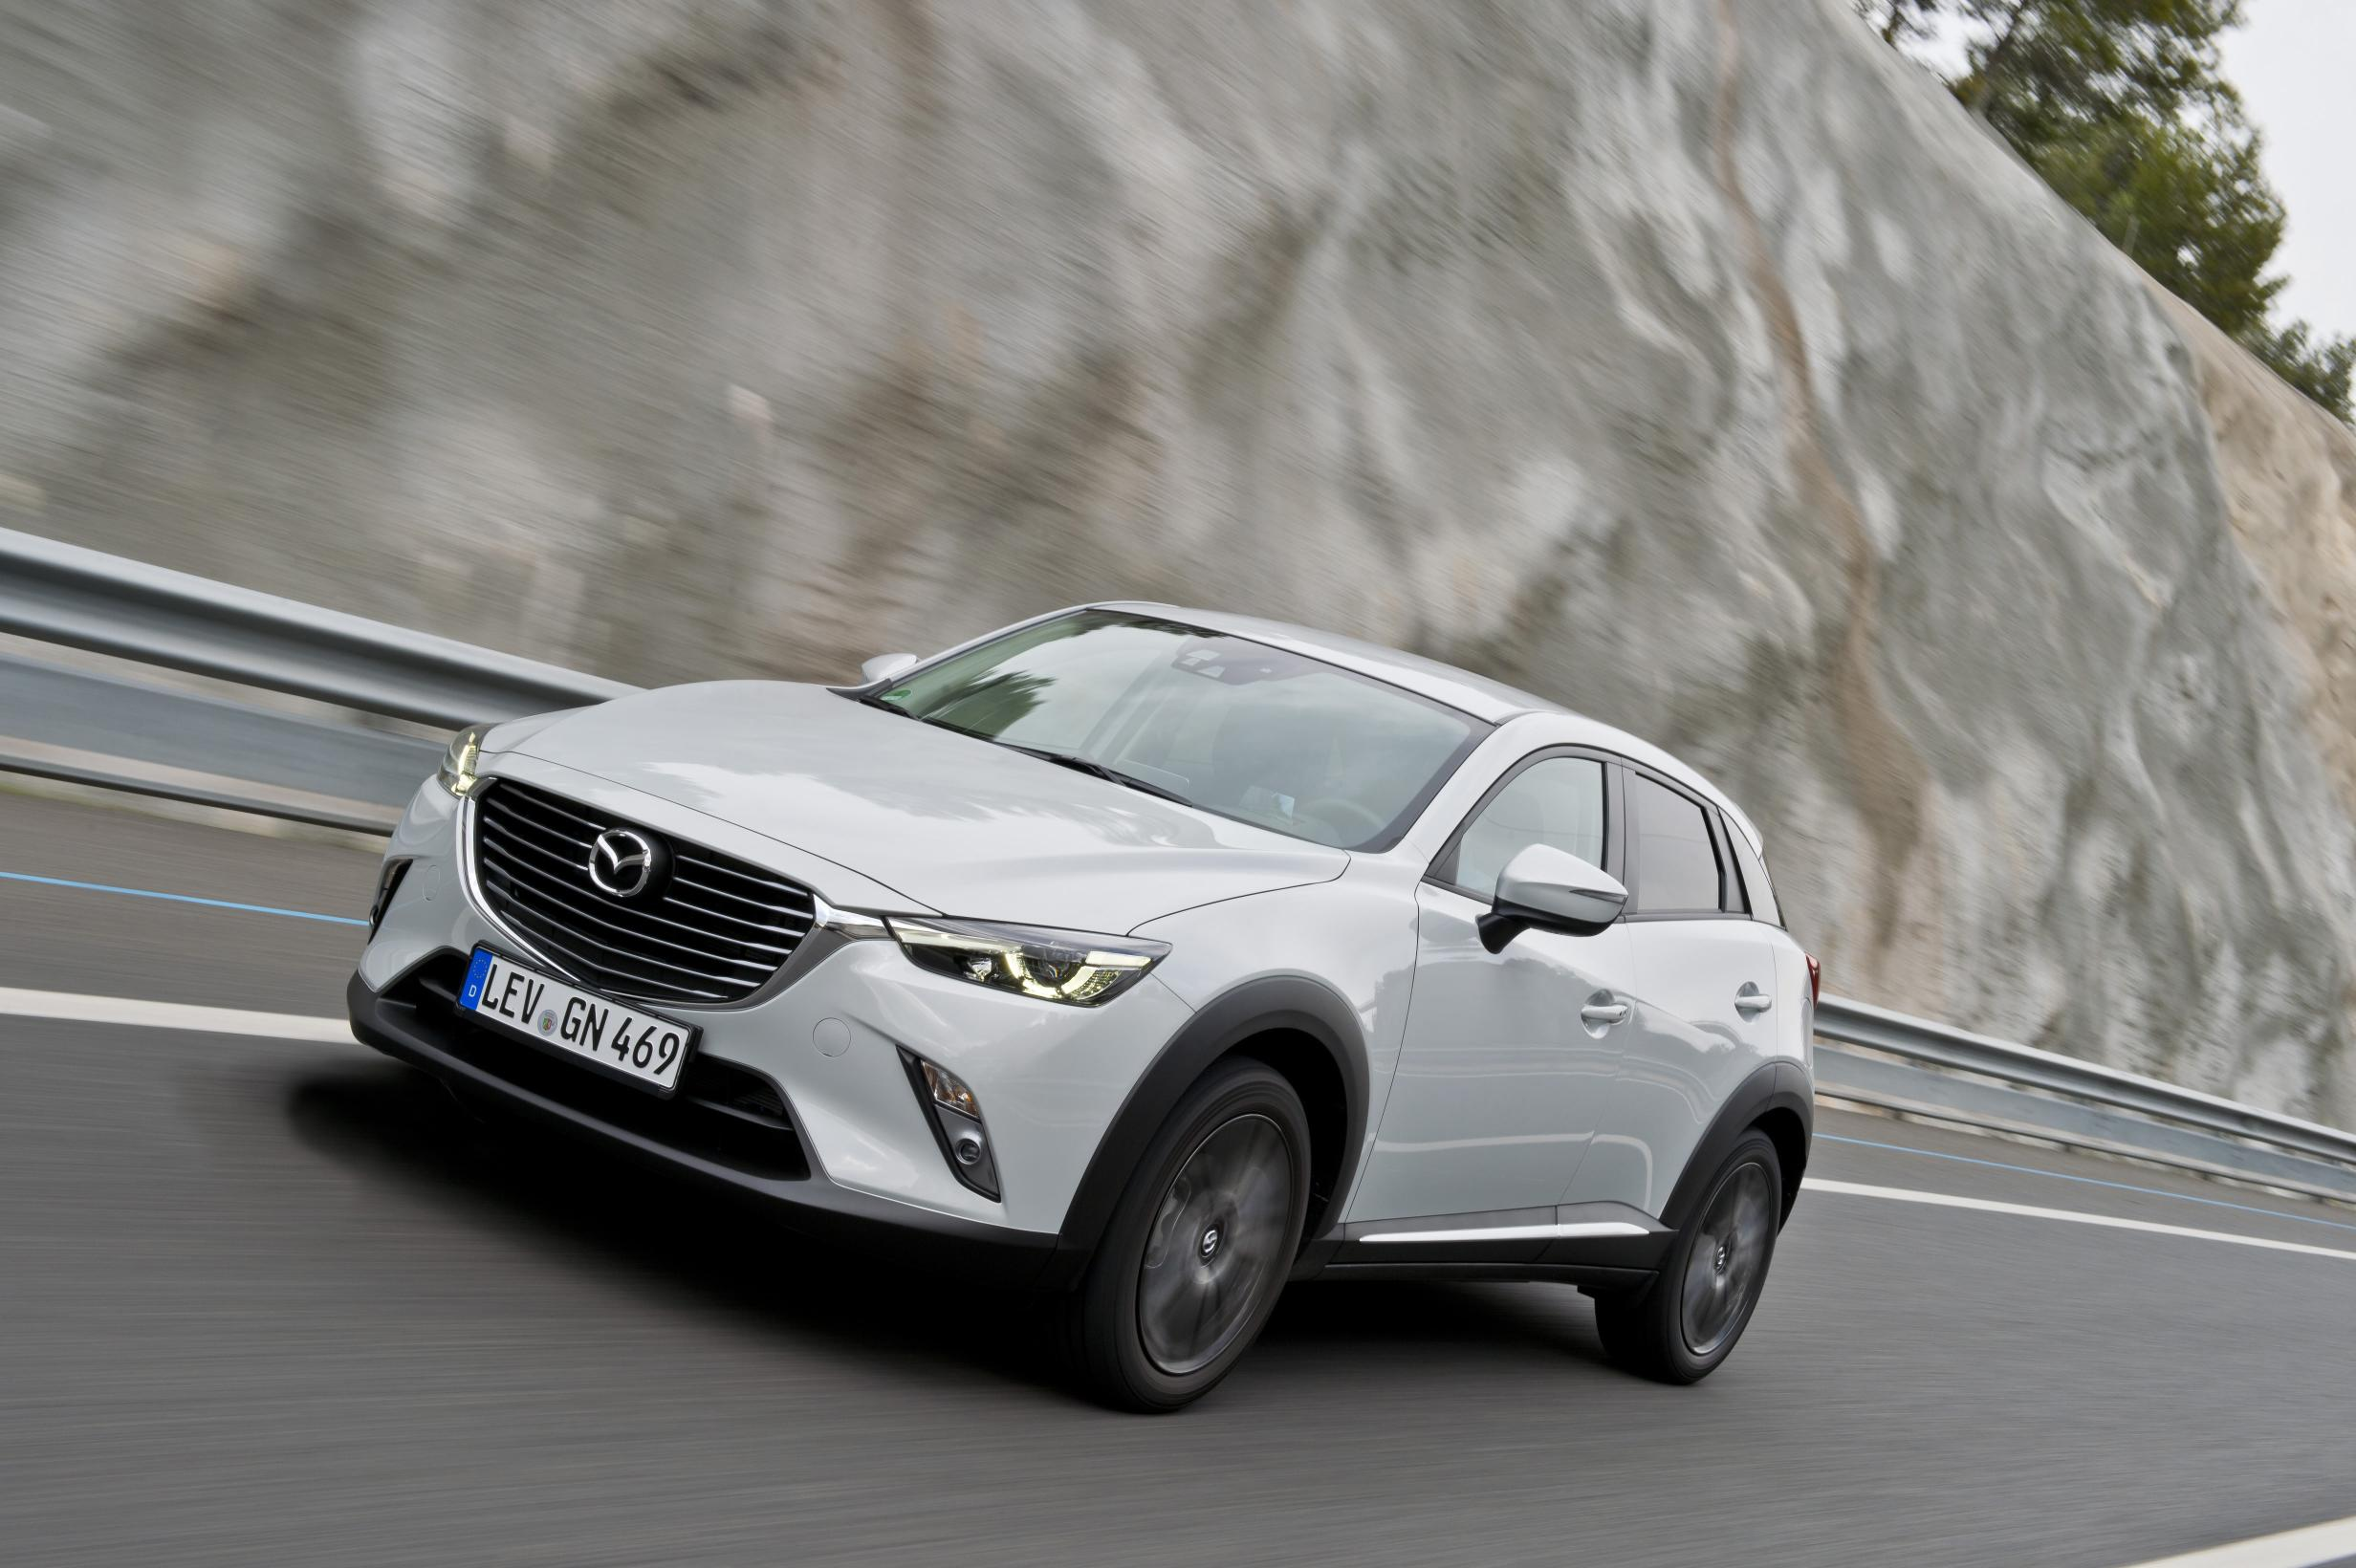 Mazda's CX-3 is compact but still very practical